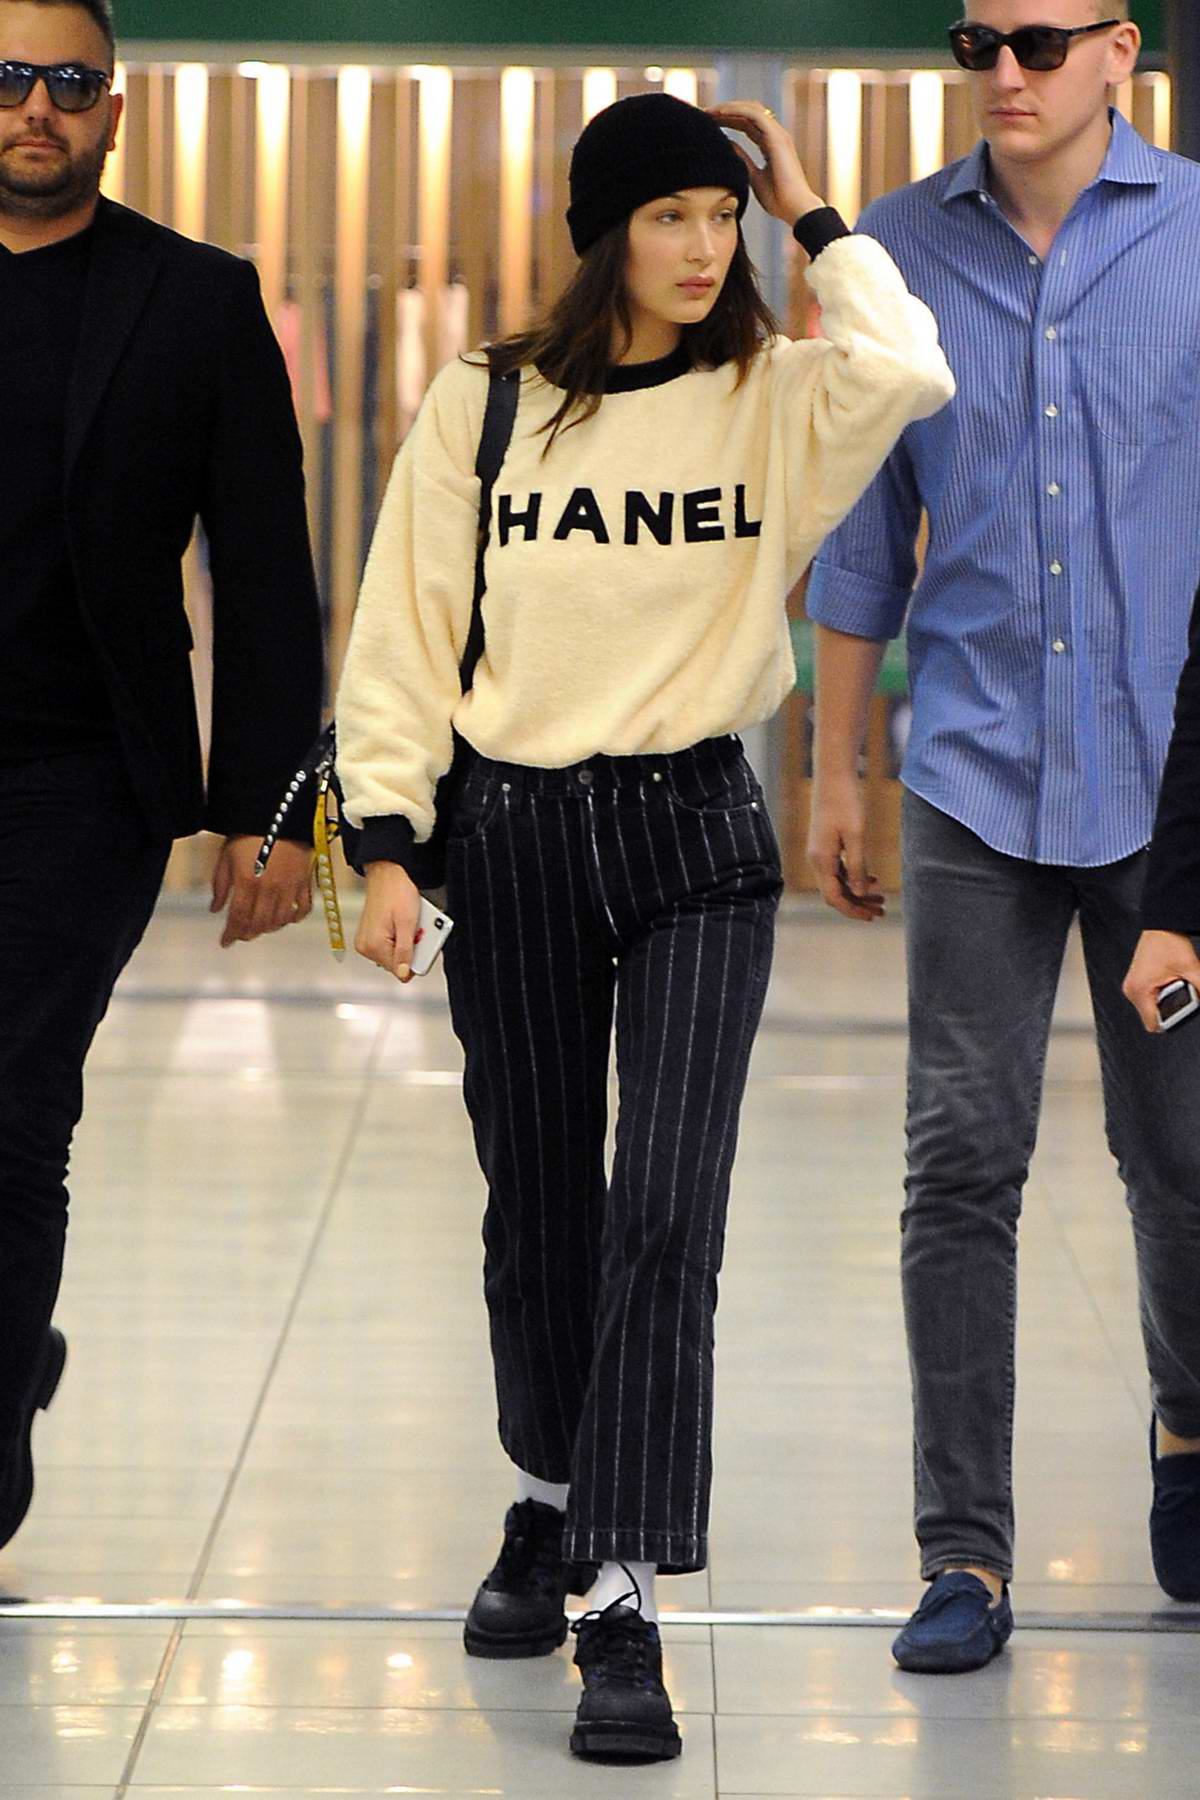 Bella Hadid rocks a Chanel sweatshirt and black striped pants as she arrives at the airport to catch a flight out of Milan, Italy